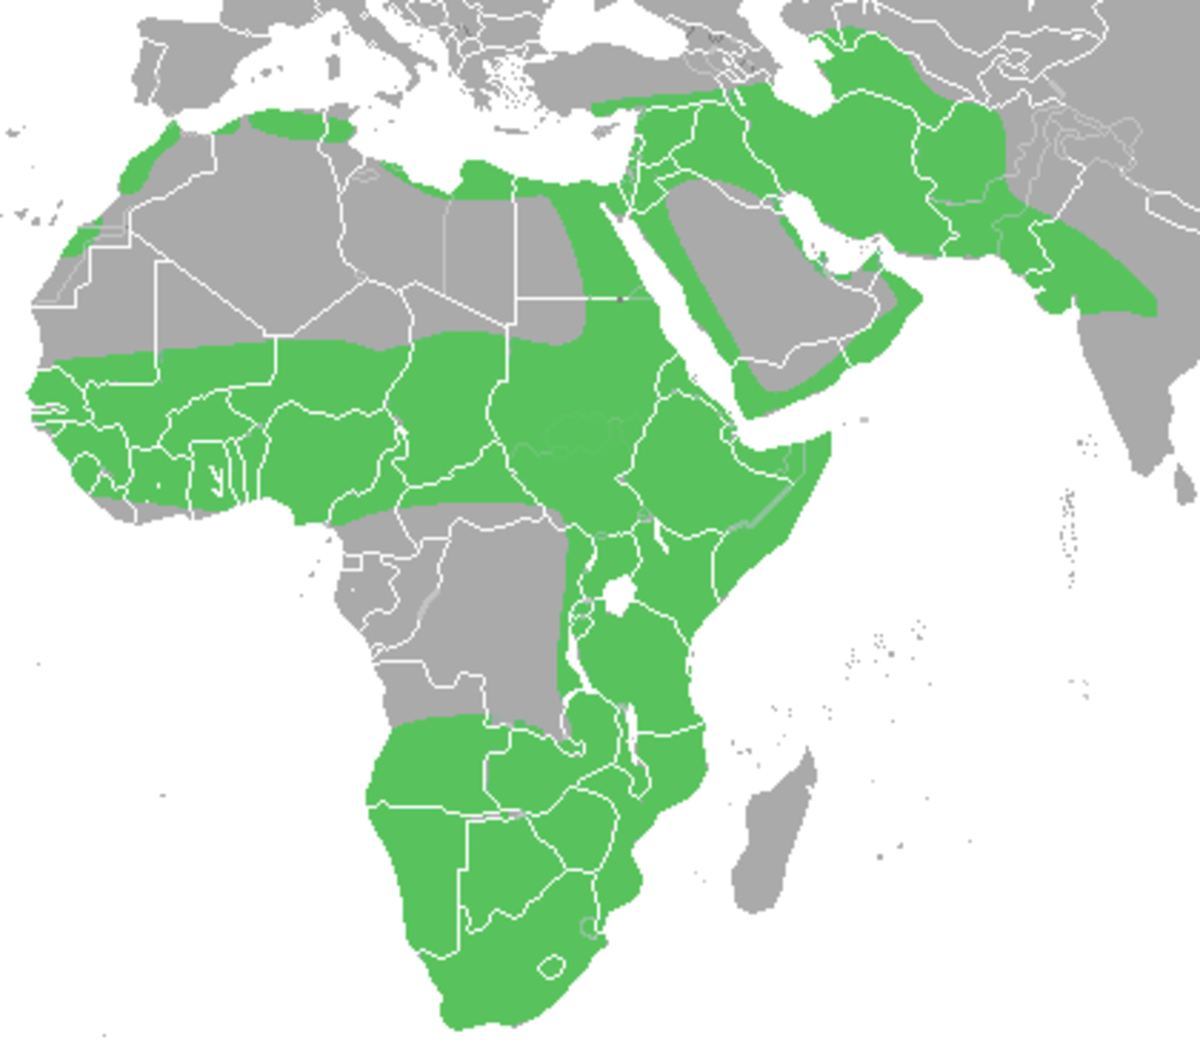 Distribution of the caracal.